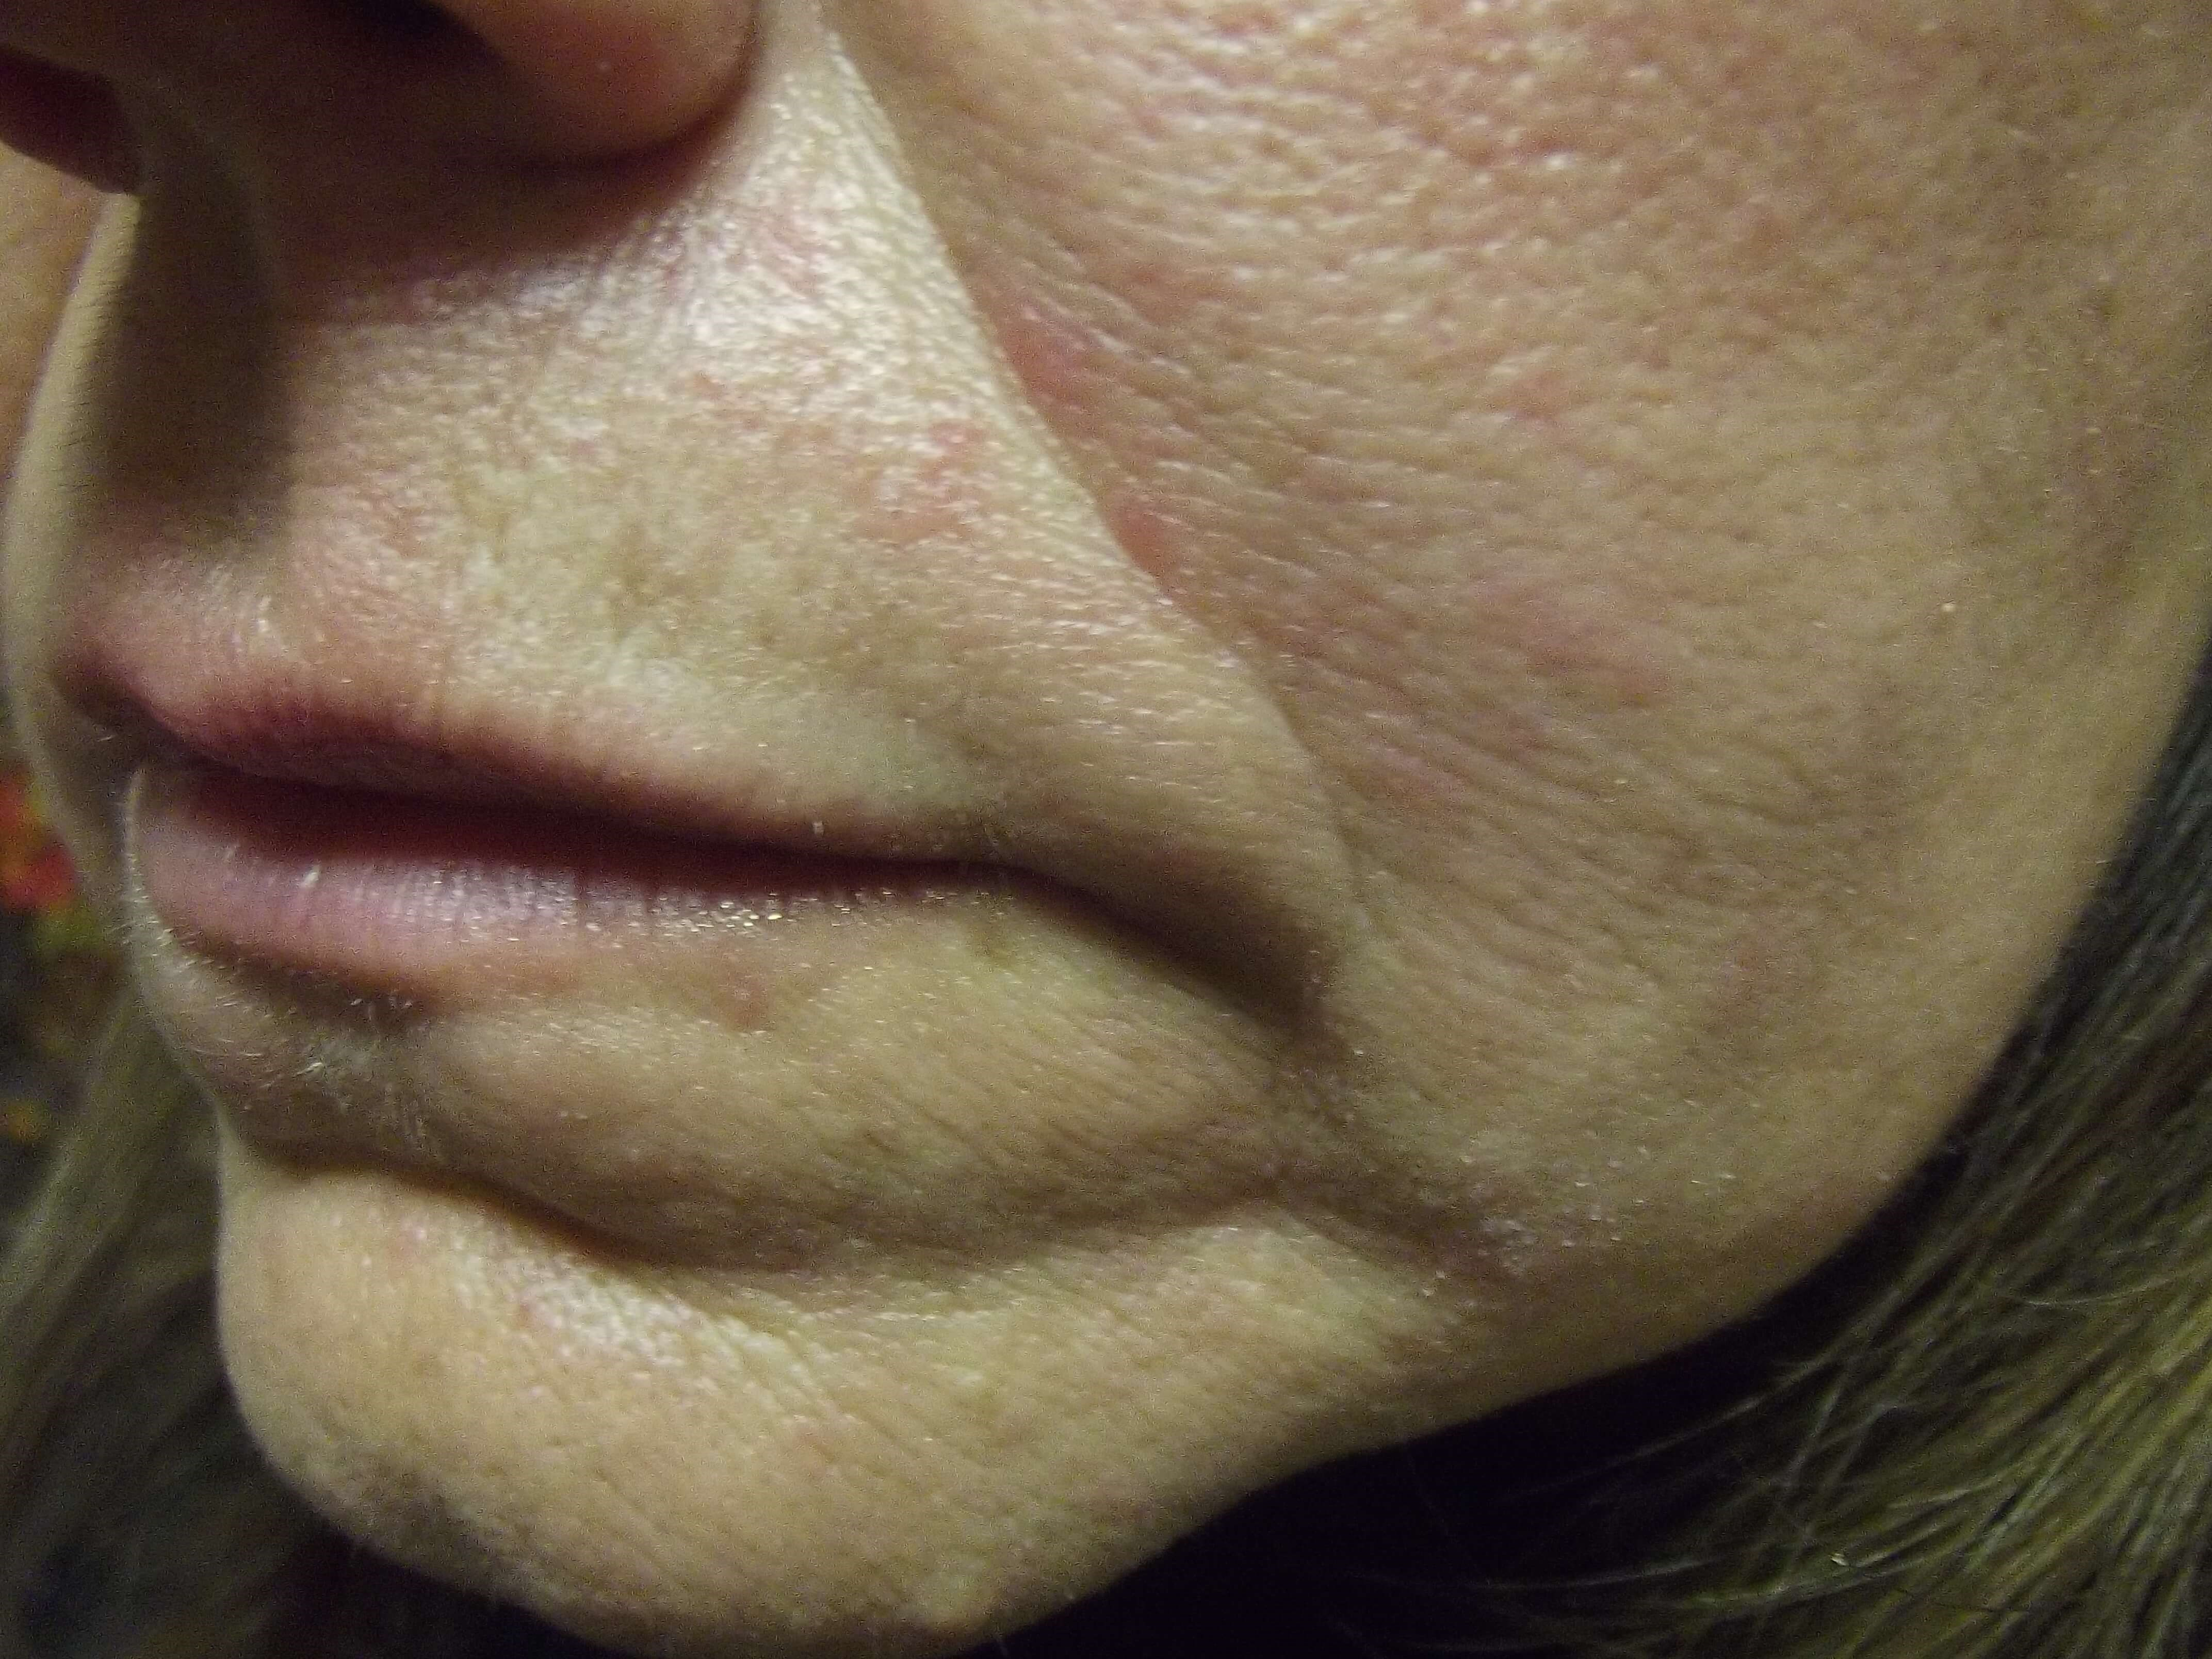 Juvederm Lifts Sagging Skin Before Juvederm Injections